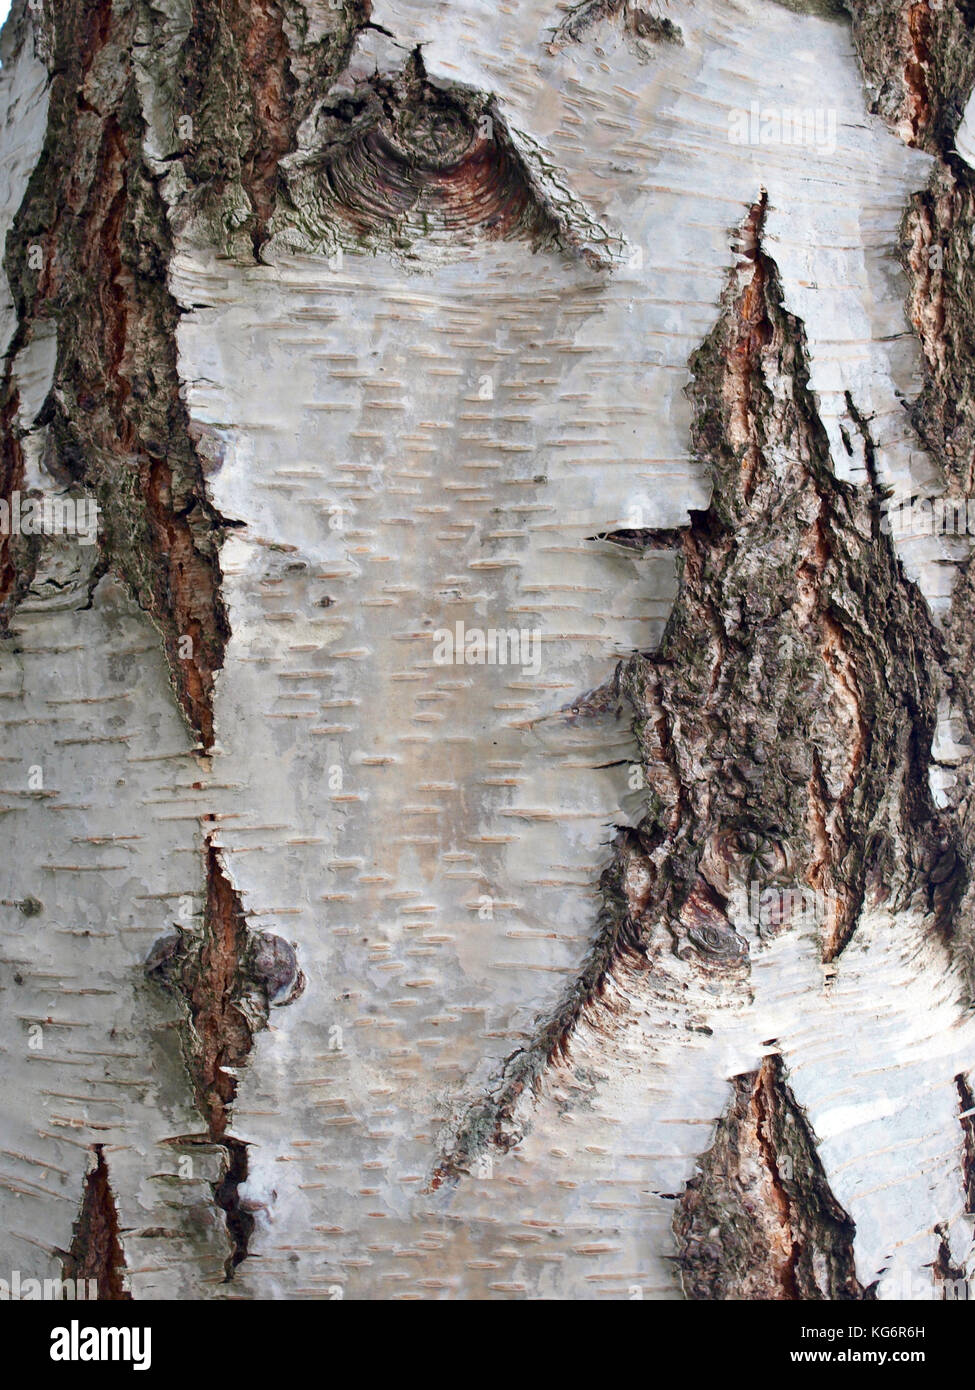 Old birch tree bark surface texture close up - Stock Image